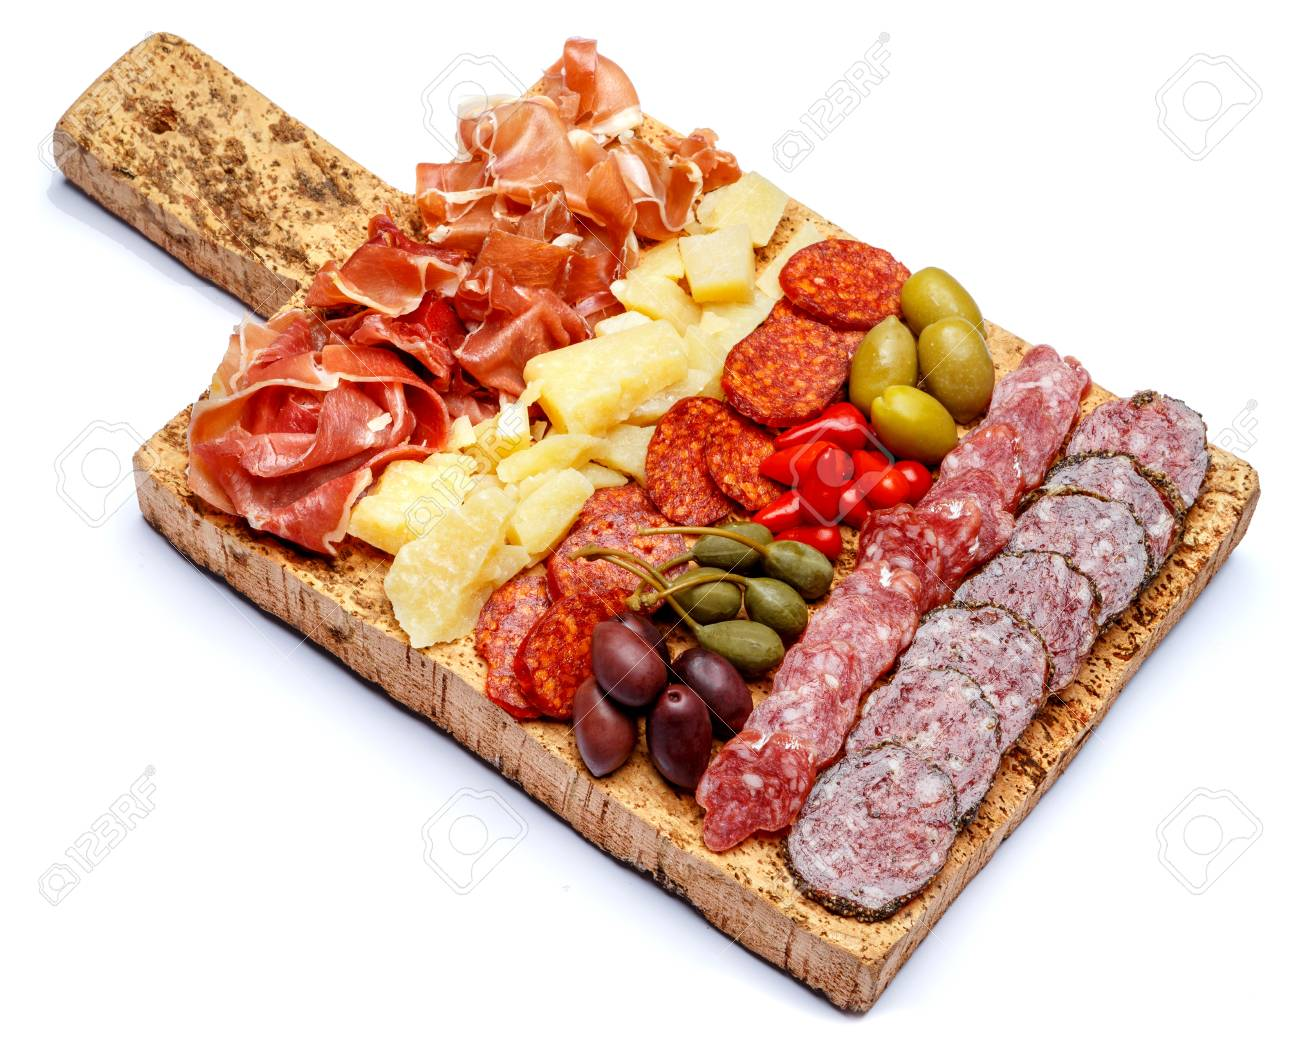 Meat and cheese plate with salami sausage chorizo parma and parmesan cheese Stock Photo  sc 1 st  123RF.com & Meat And Cheese Plate With Salami Sausage Chorizo Parma And ...